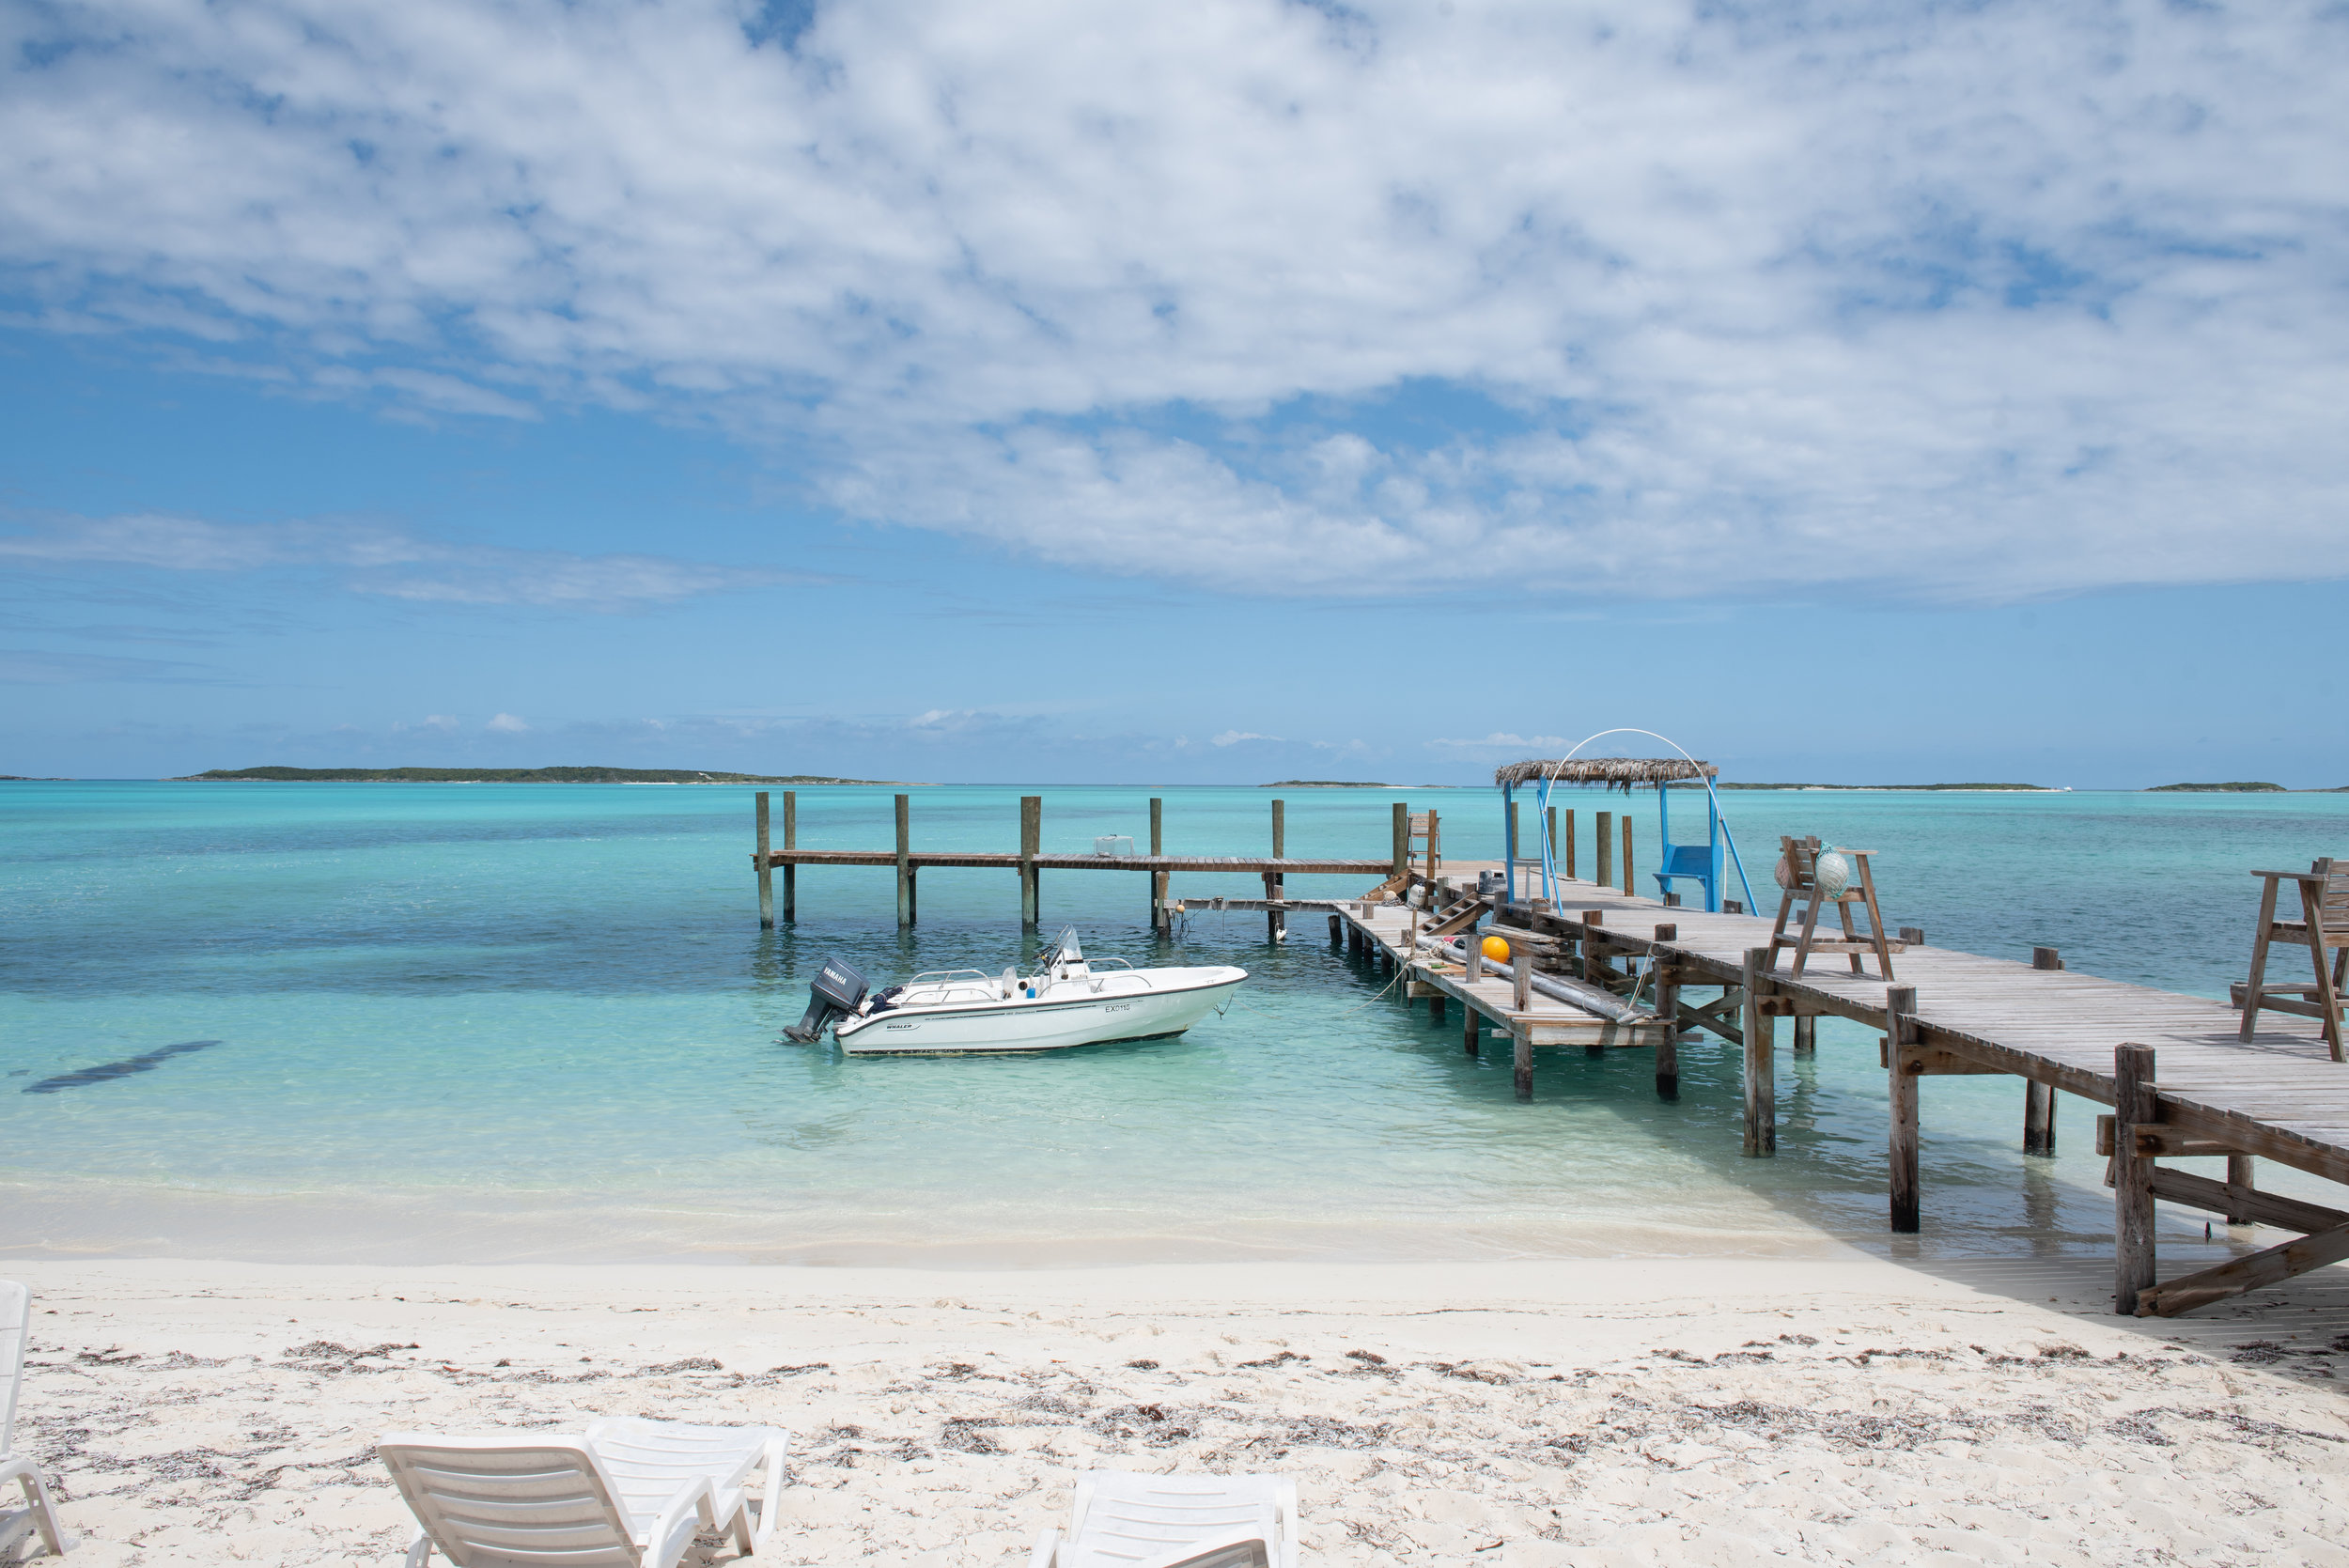 At our AirBnb, there was a restaurant and dock where you could rent jetskis, boats, paddleboards, kayaks, etc! The food was delicious at the restaurant (Exuma Point Beach Bar and Grill) and we loved getting to know the owners/our AirBnb hosts, Maryann and Elvis!